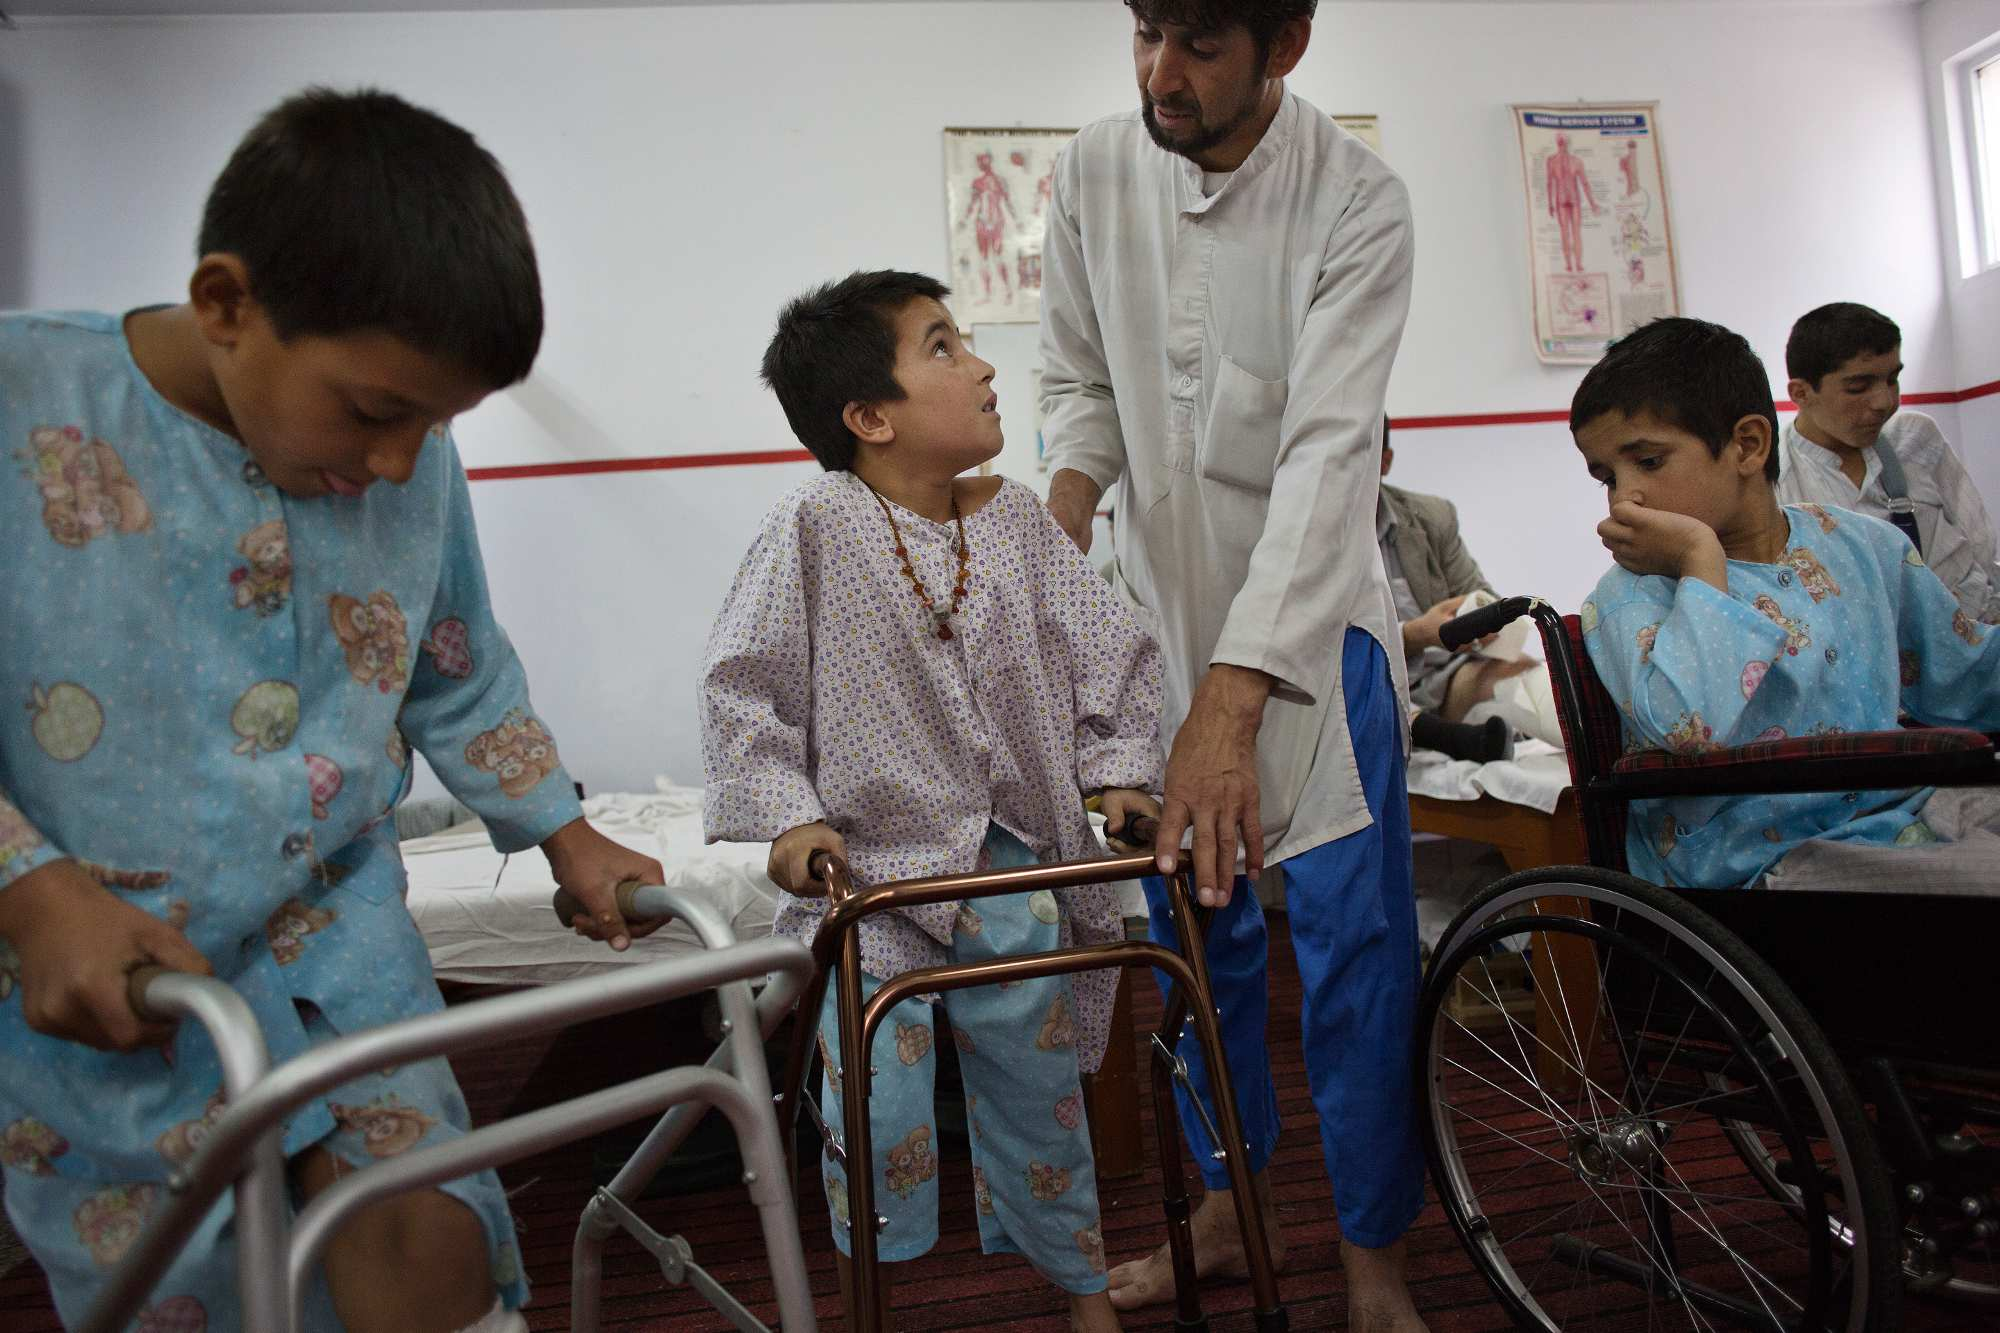 Physiotherapist Yusef, center, helps Ismael Jan, 6, center, try to walk as Rahmatullah, left, tries out a walker and Hakim Jan, 10, right, looks on, in the physical therapy department. All three boys suffered traumatic injuries to their legs in the fighting in their home districts and were treated at Emergency.